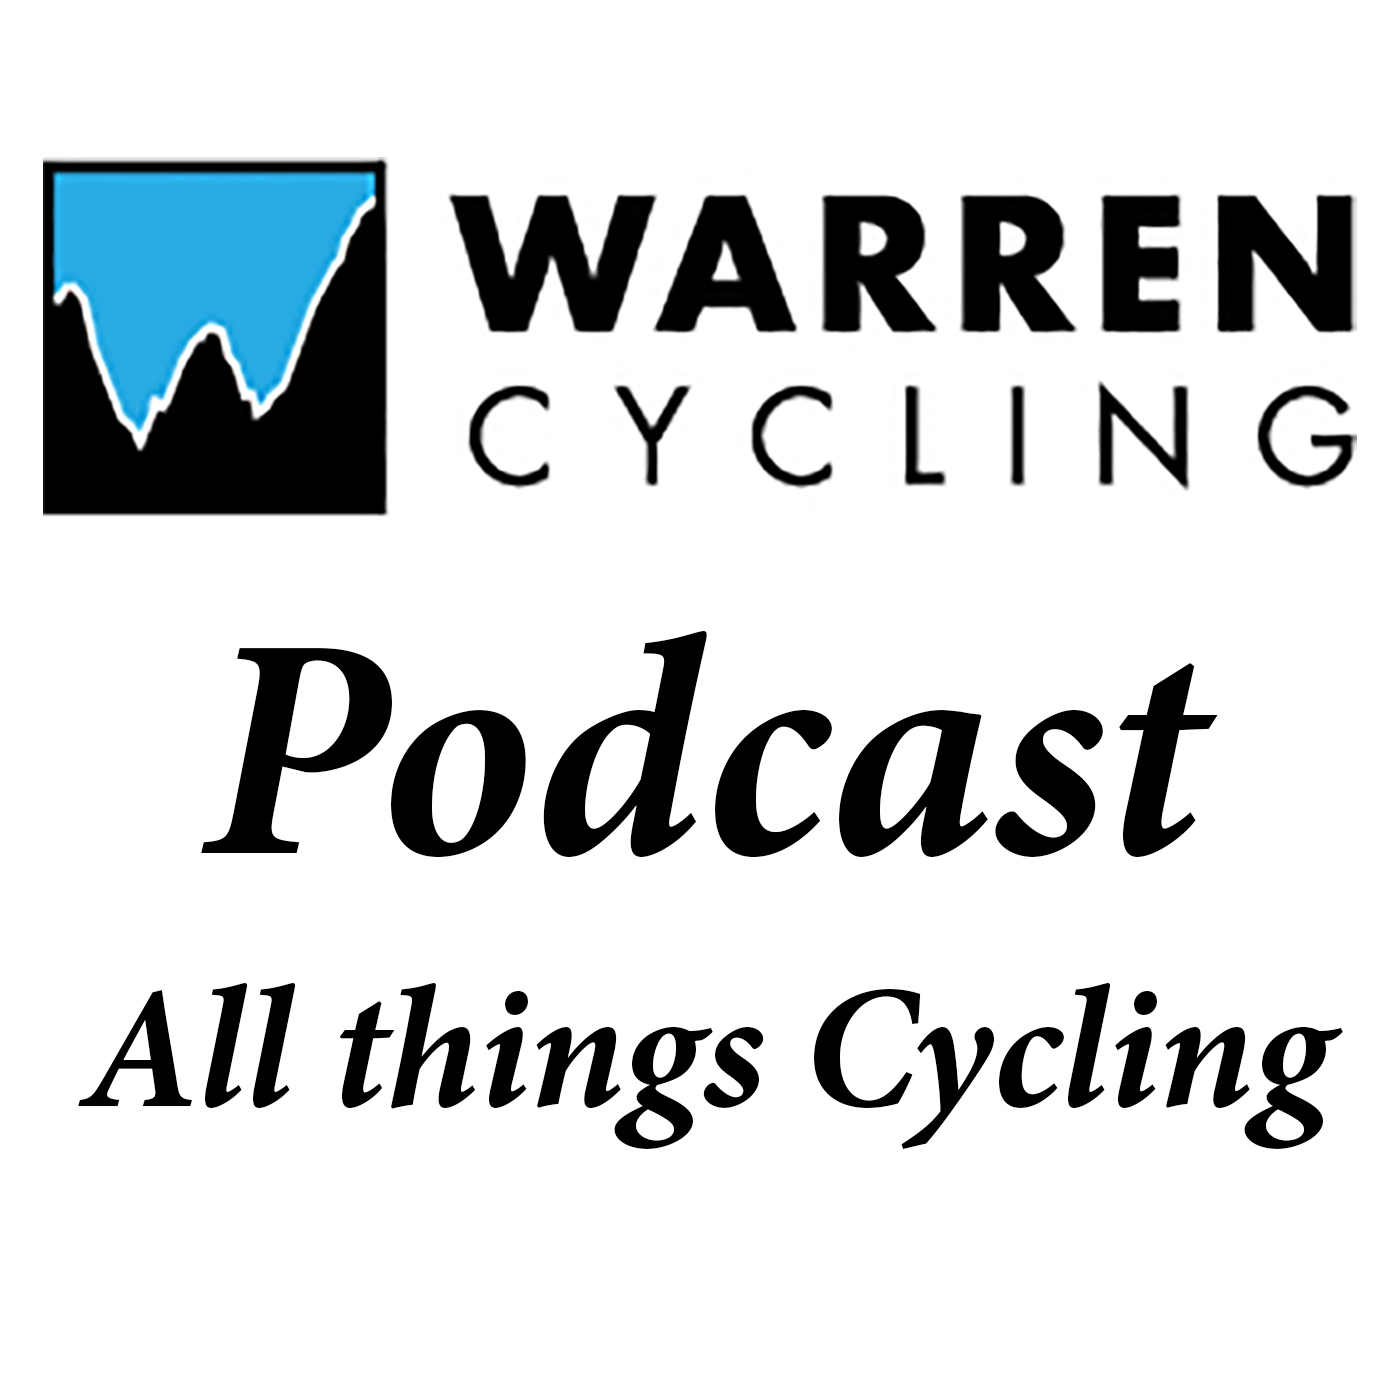 Warren Cycling Podcast Episode 236: January Cycling News show art